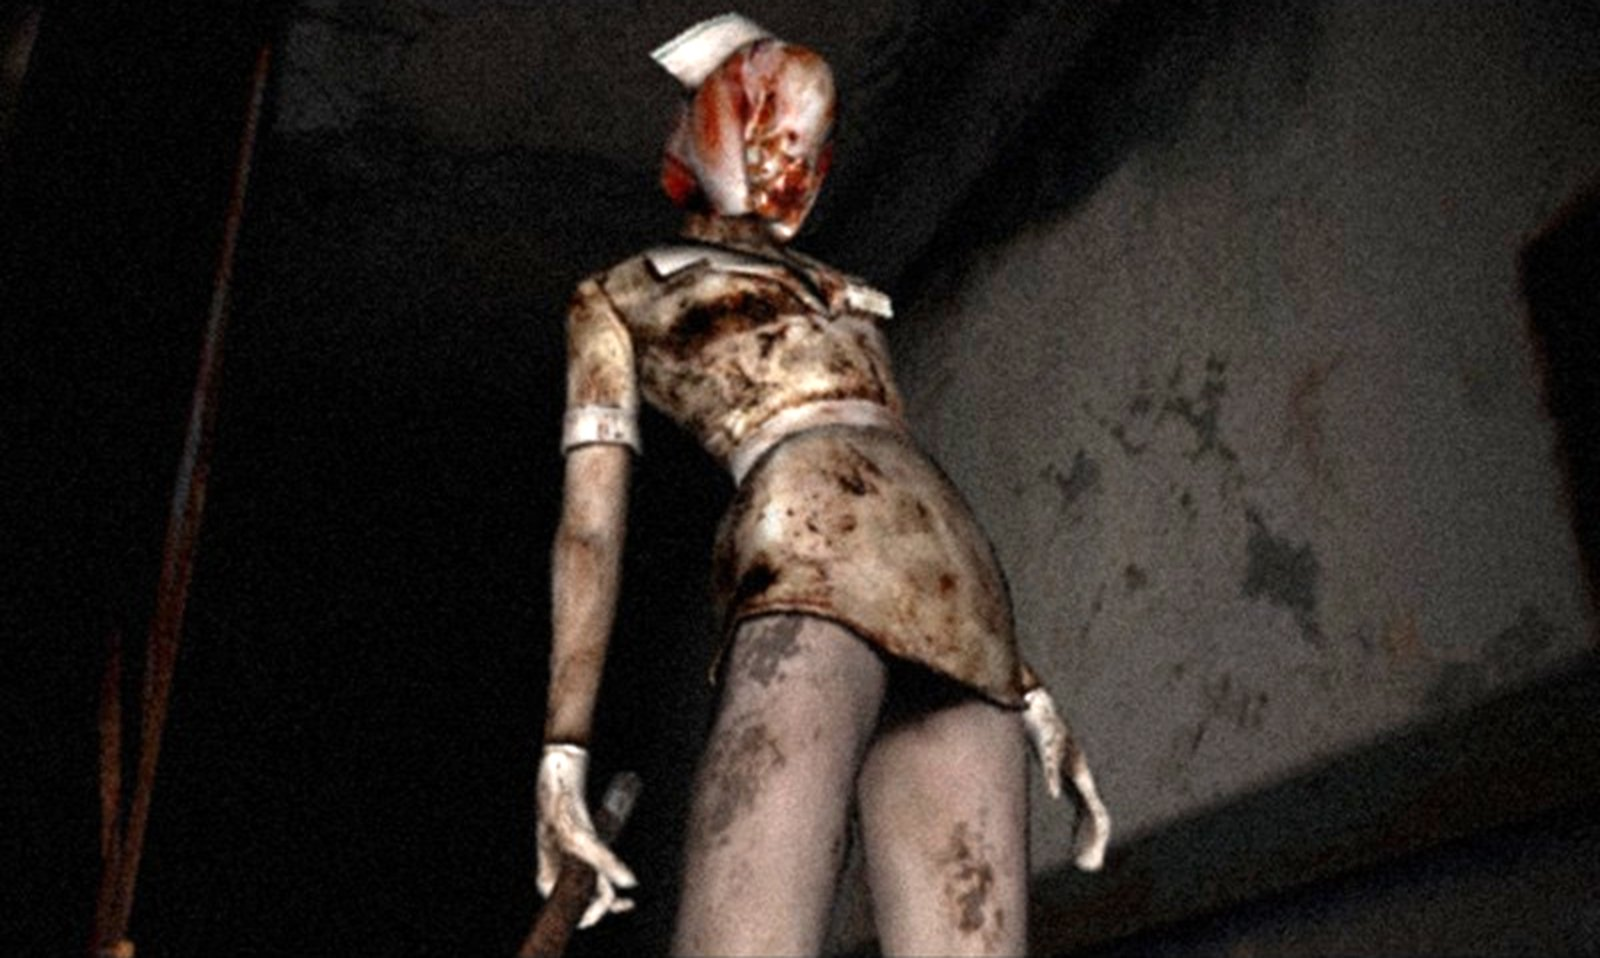 Shelved Silent Hill Game Surfaces